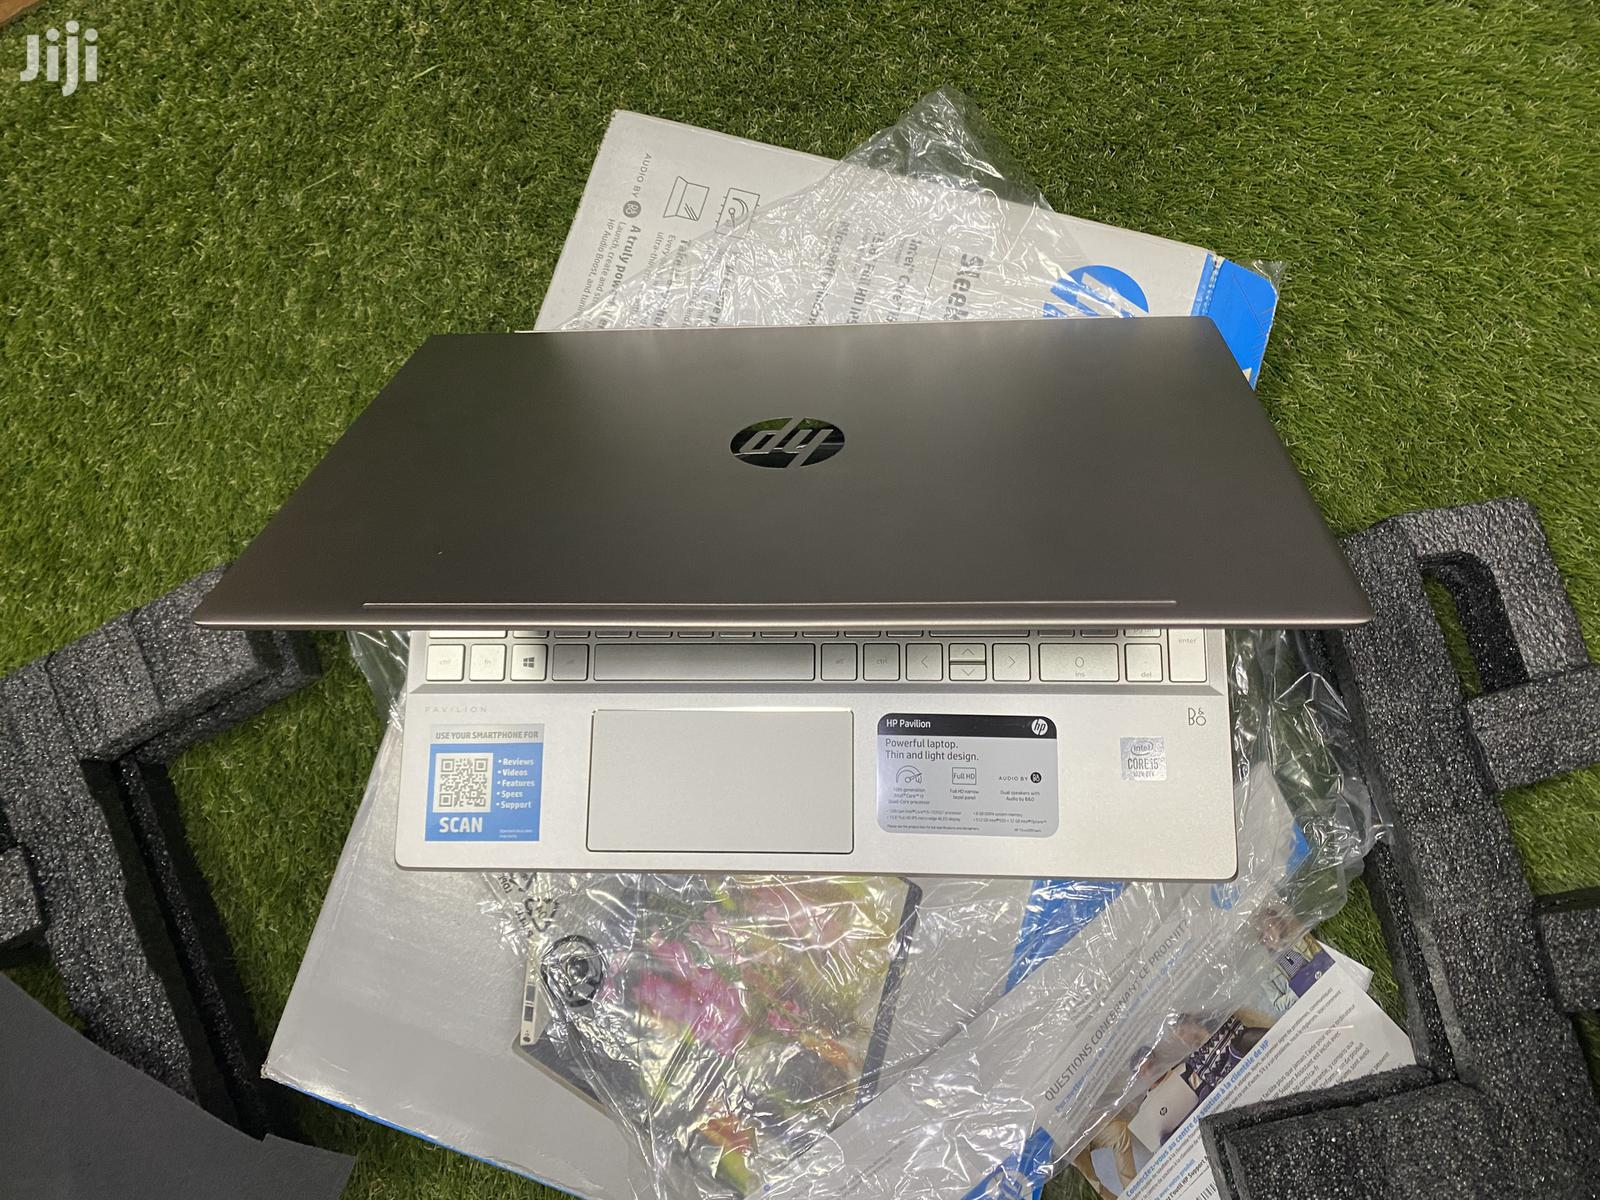 New Laptop HP Pavilion 15 8GB Intel Core i5 SSD 512GB | Laptops & Computers for sale in Madina, Greater Accra, Ghana